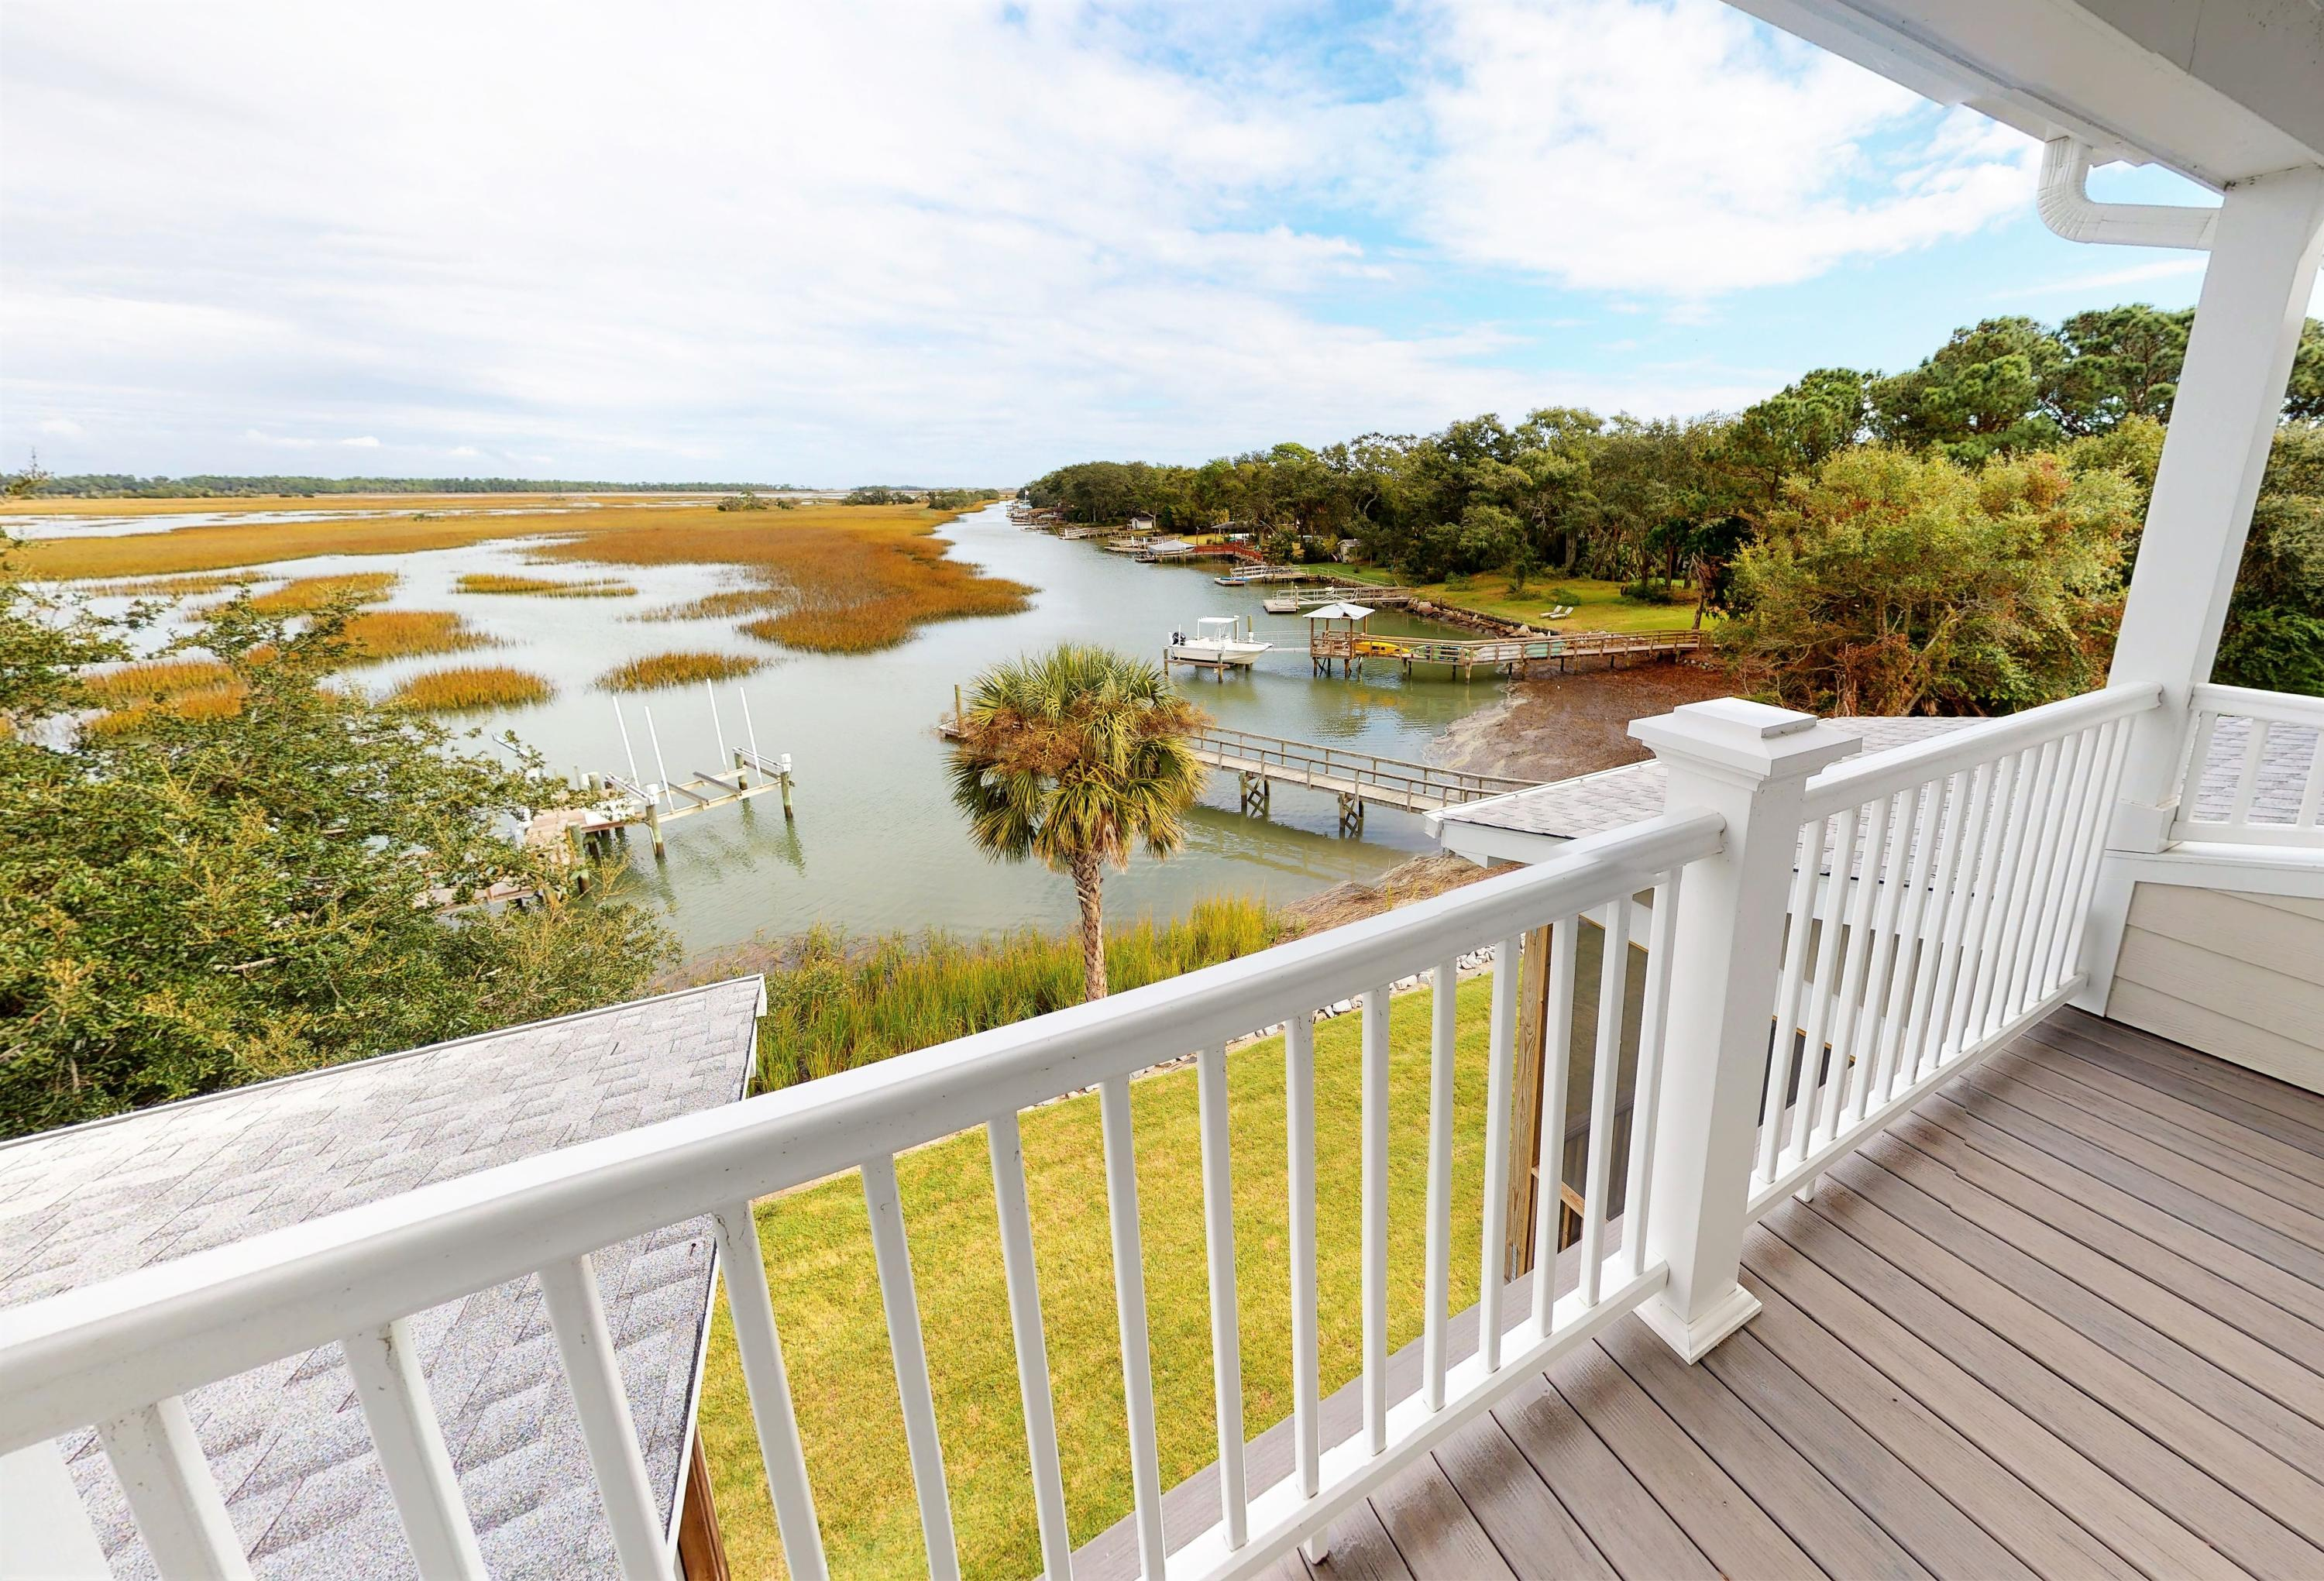 Folly Creek Place Homes For Sale - 2240 Folly, Folly Beach, SC - 22